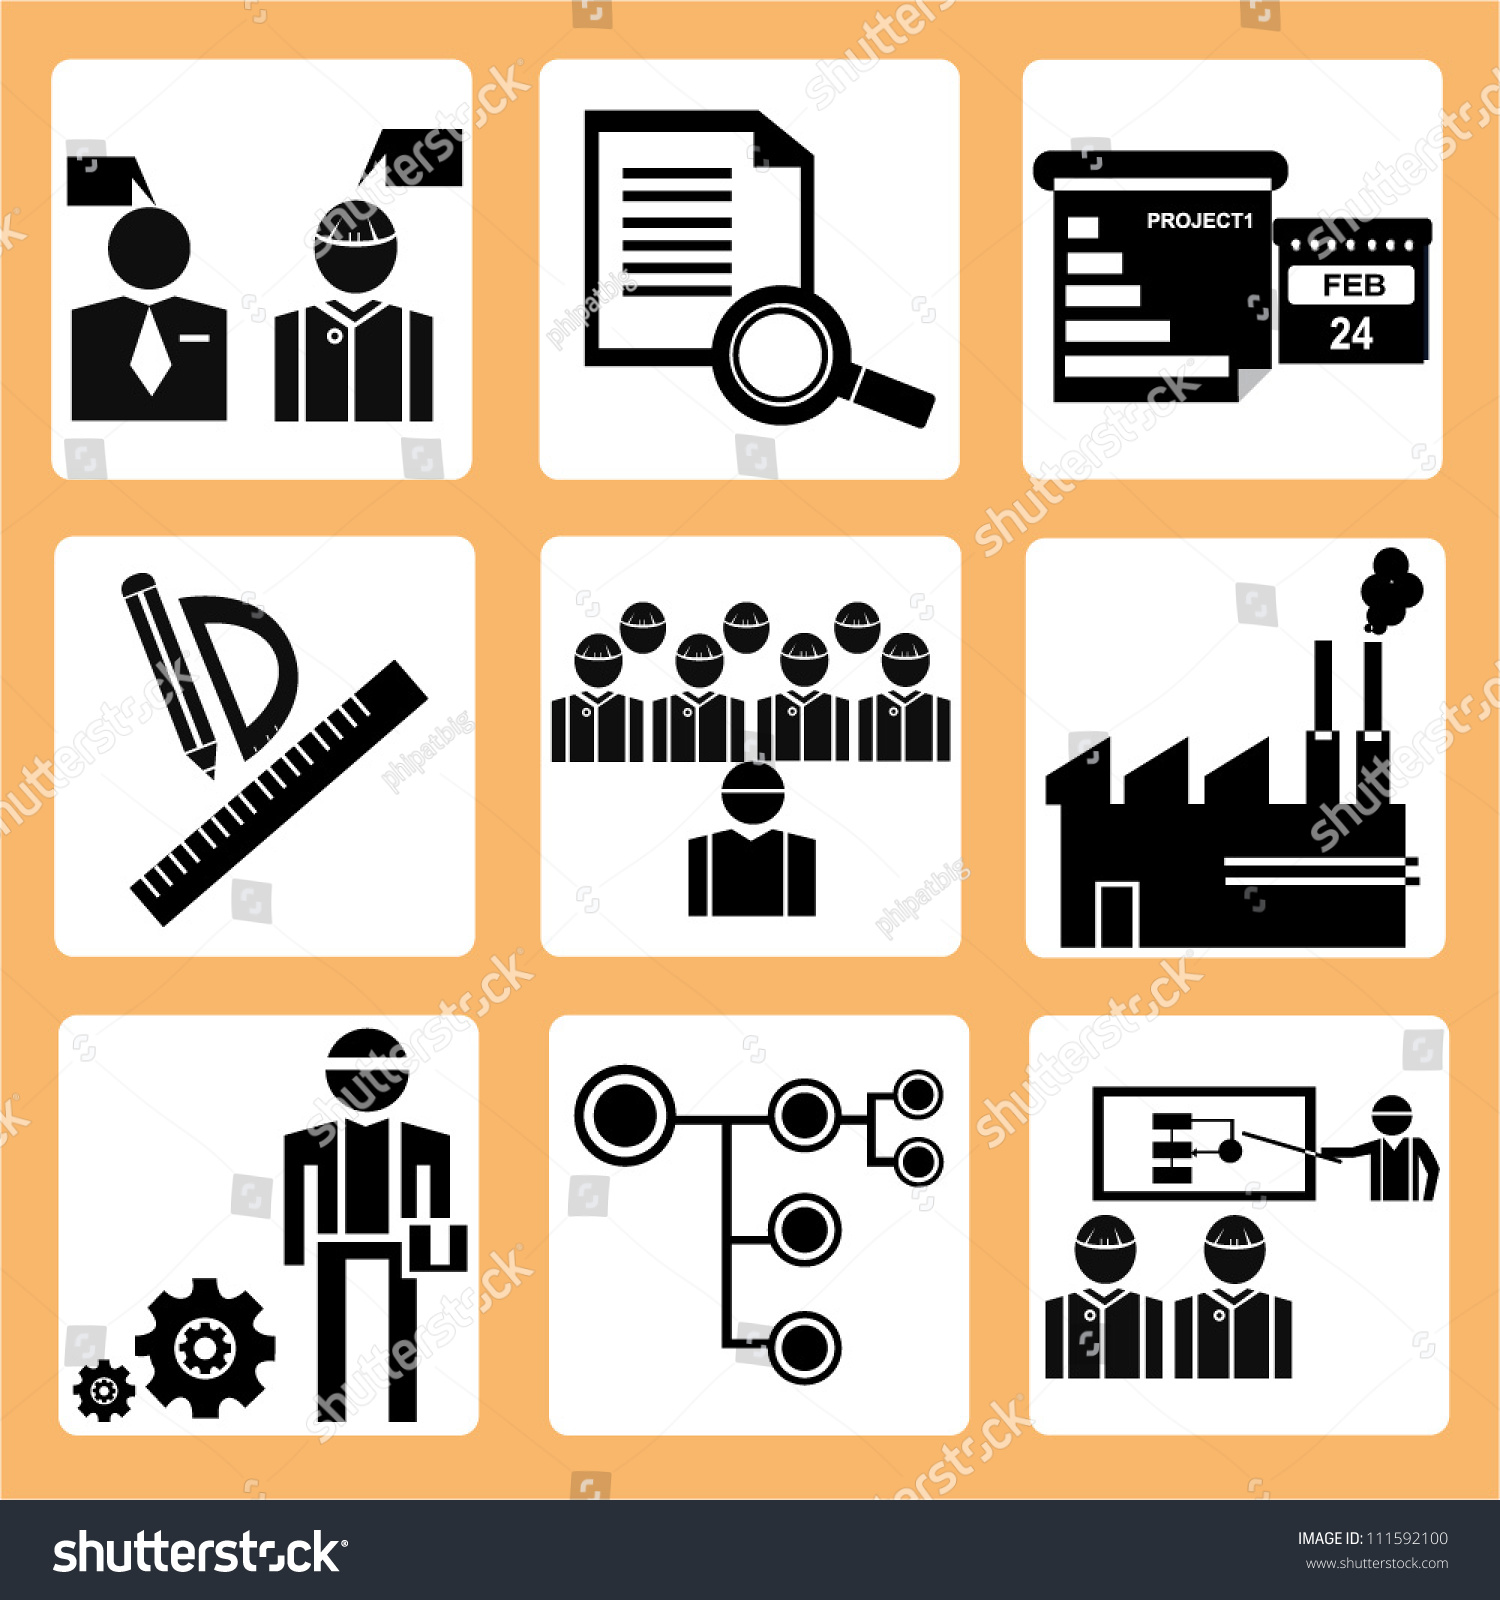 management in organization Synonyms for management at thesauruscom with free online thesaurus, antonyms, and definitions find descriptive alternatives for management.